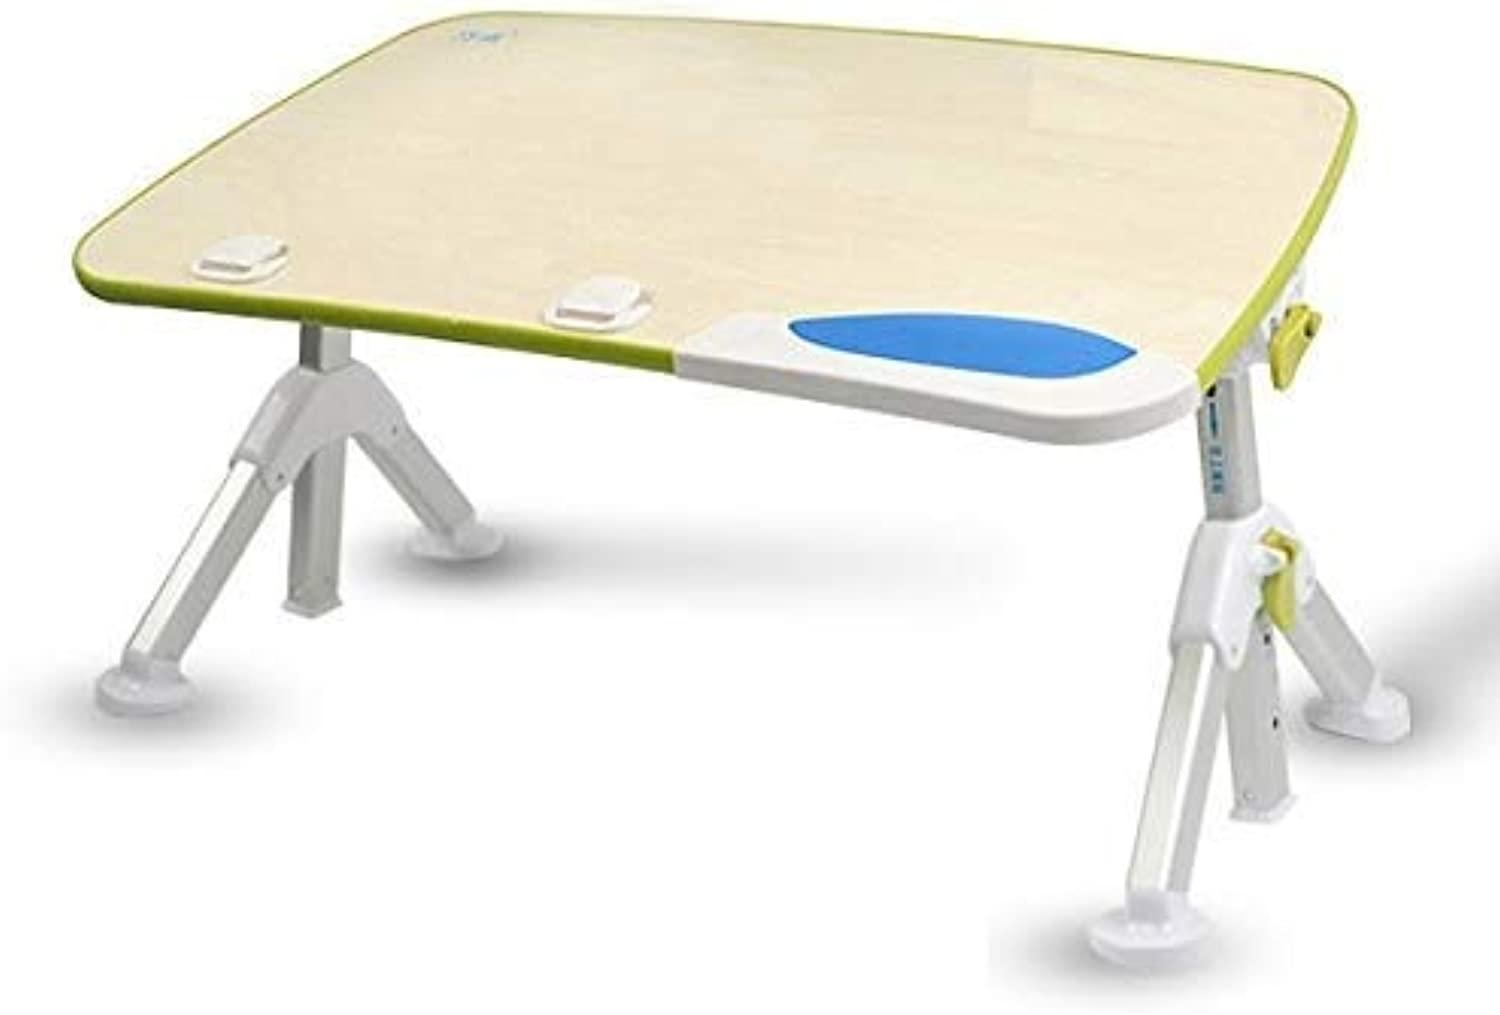 Bed Desk, Multi-Function Large Computer Desk, Foldable Student Desk, Heightened Lazy Bed Table, Dormitory Single Mobile Notebook Electric Table (color   Olive Green, Size   Small)